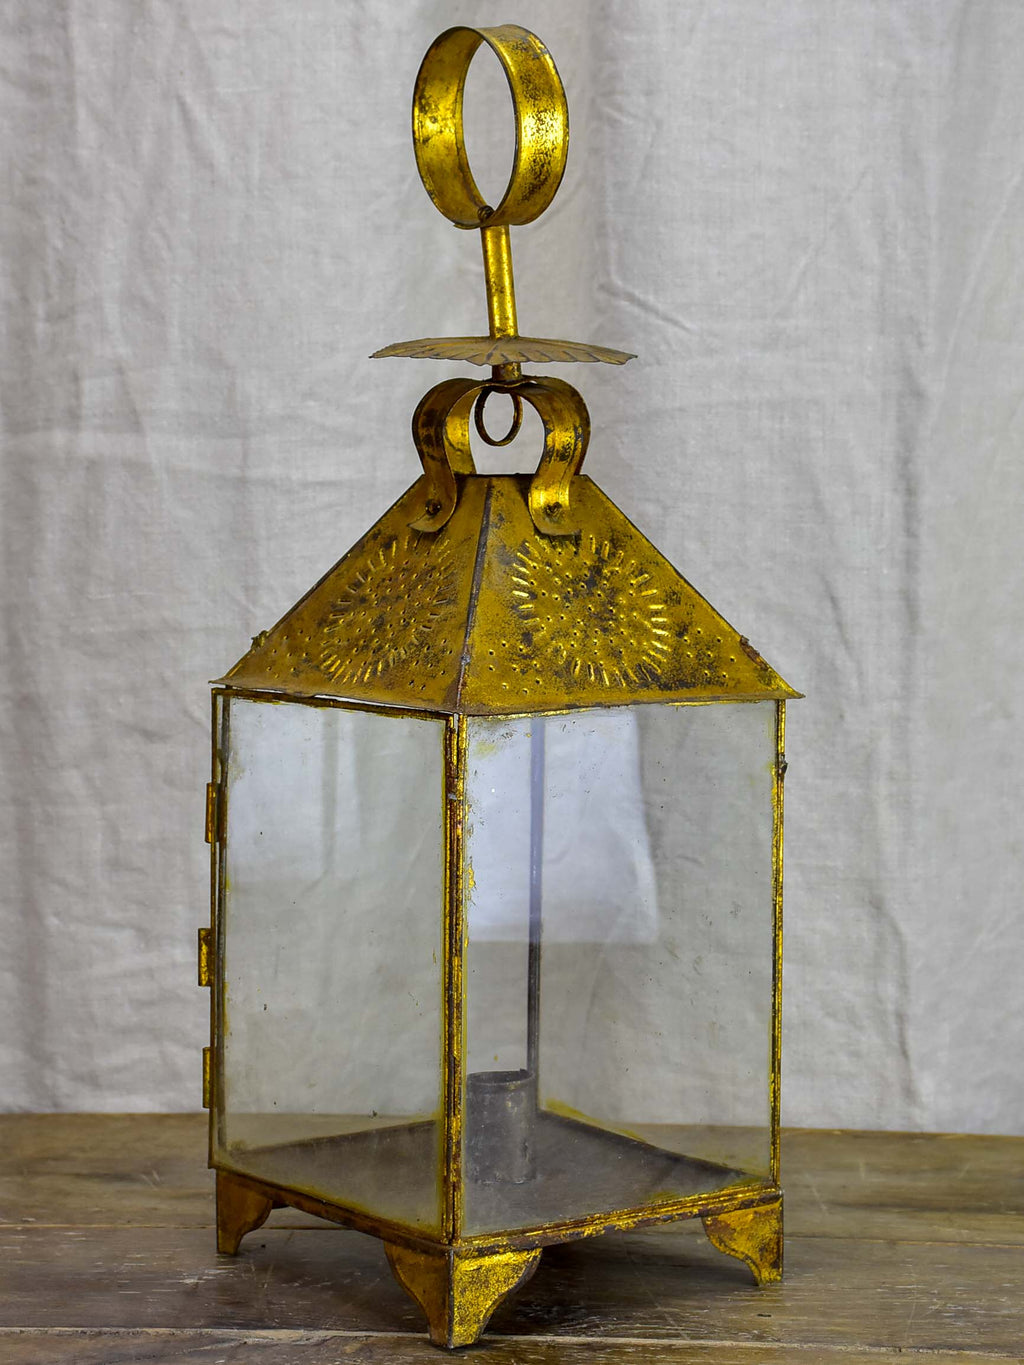 Antique Spanish candle lantern